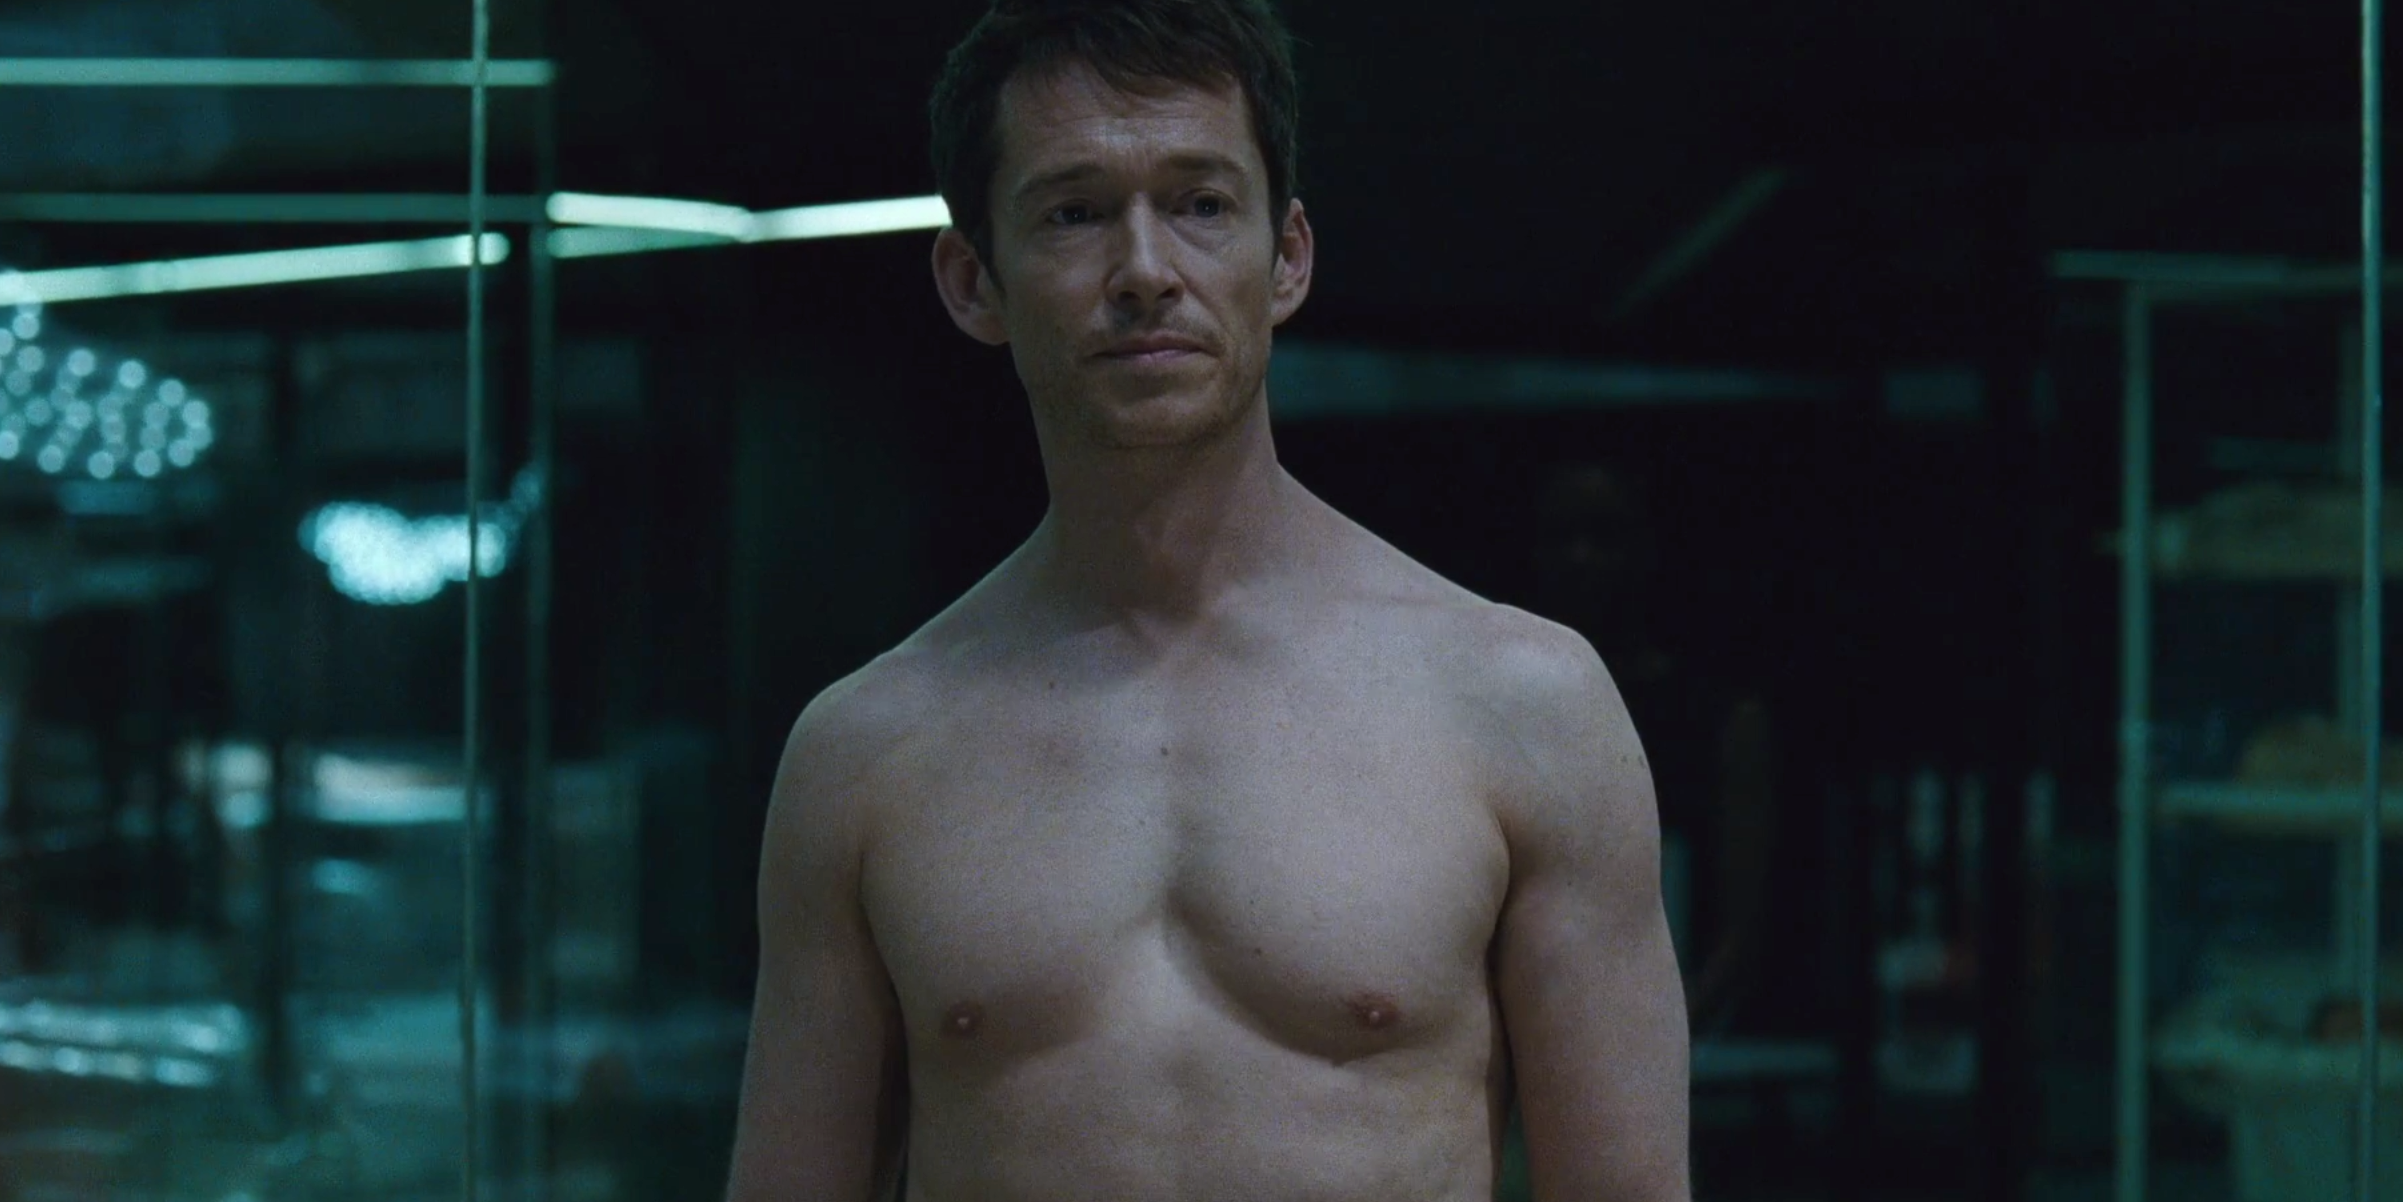 That Westworld Nude Scene Proves Just How Quickly the